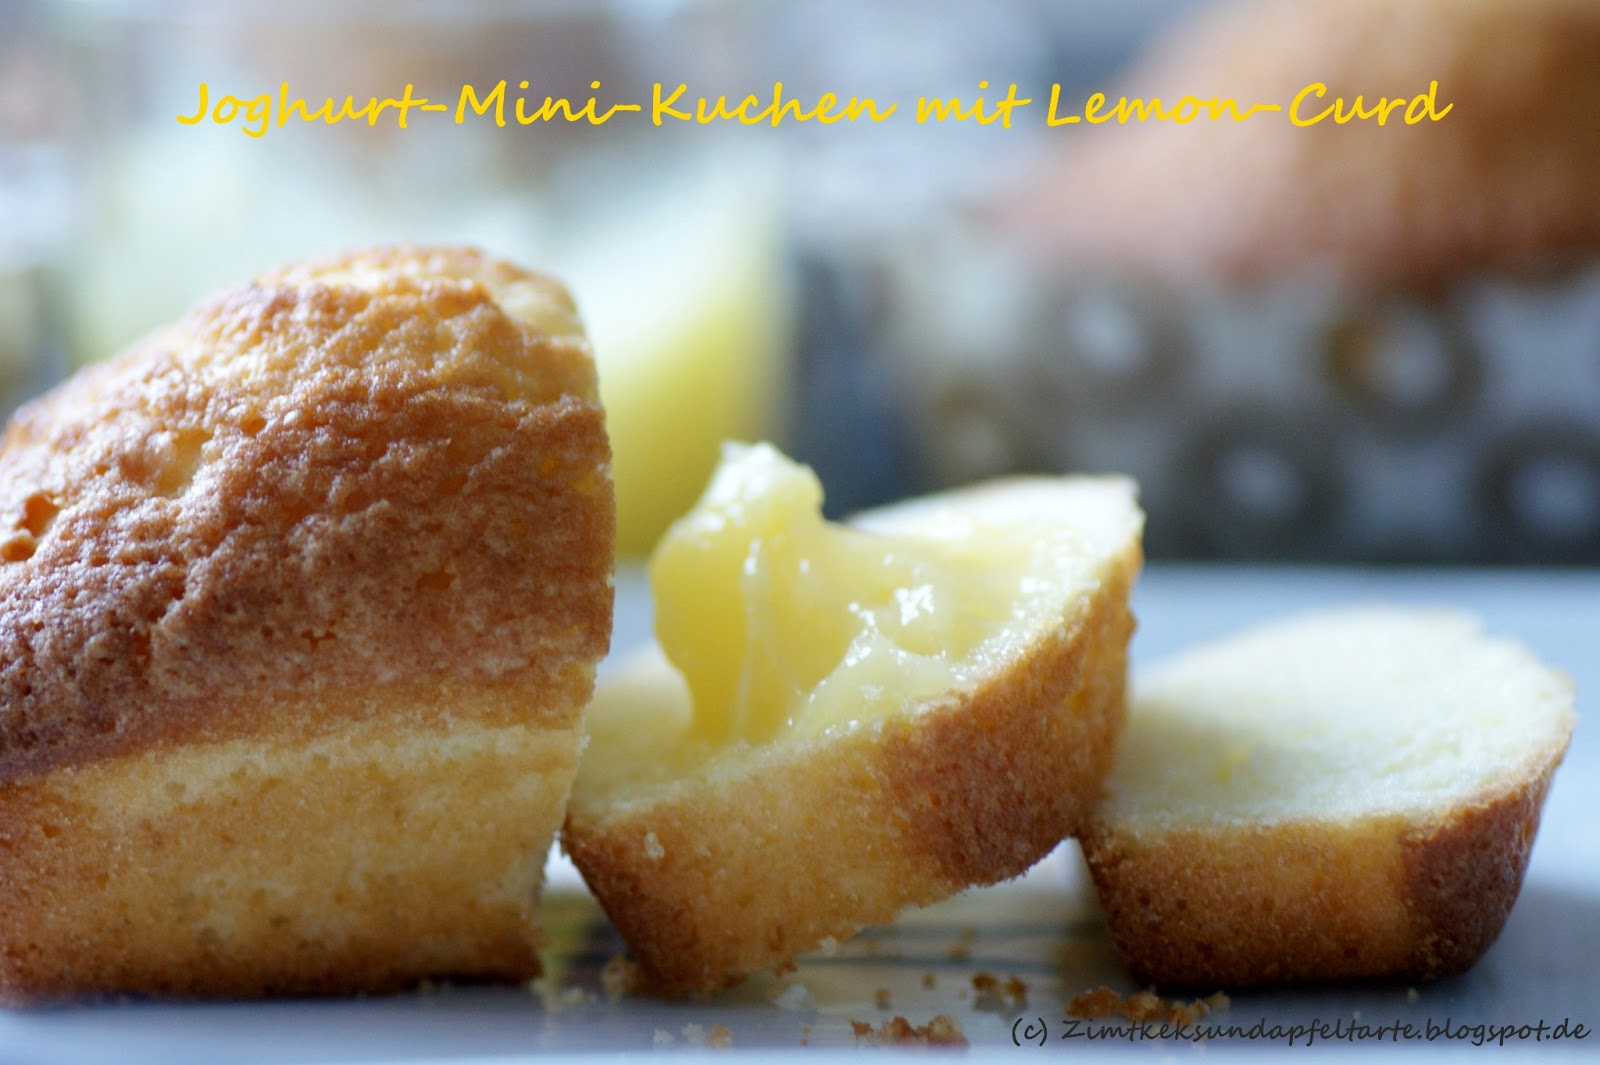 zimtkeks und apfeltarte joghurt mini kuchen mit lemon curd. Black Bedroom Furniture Sets. Home Design Ideas